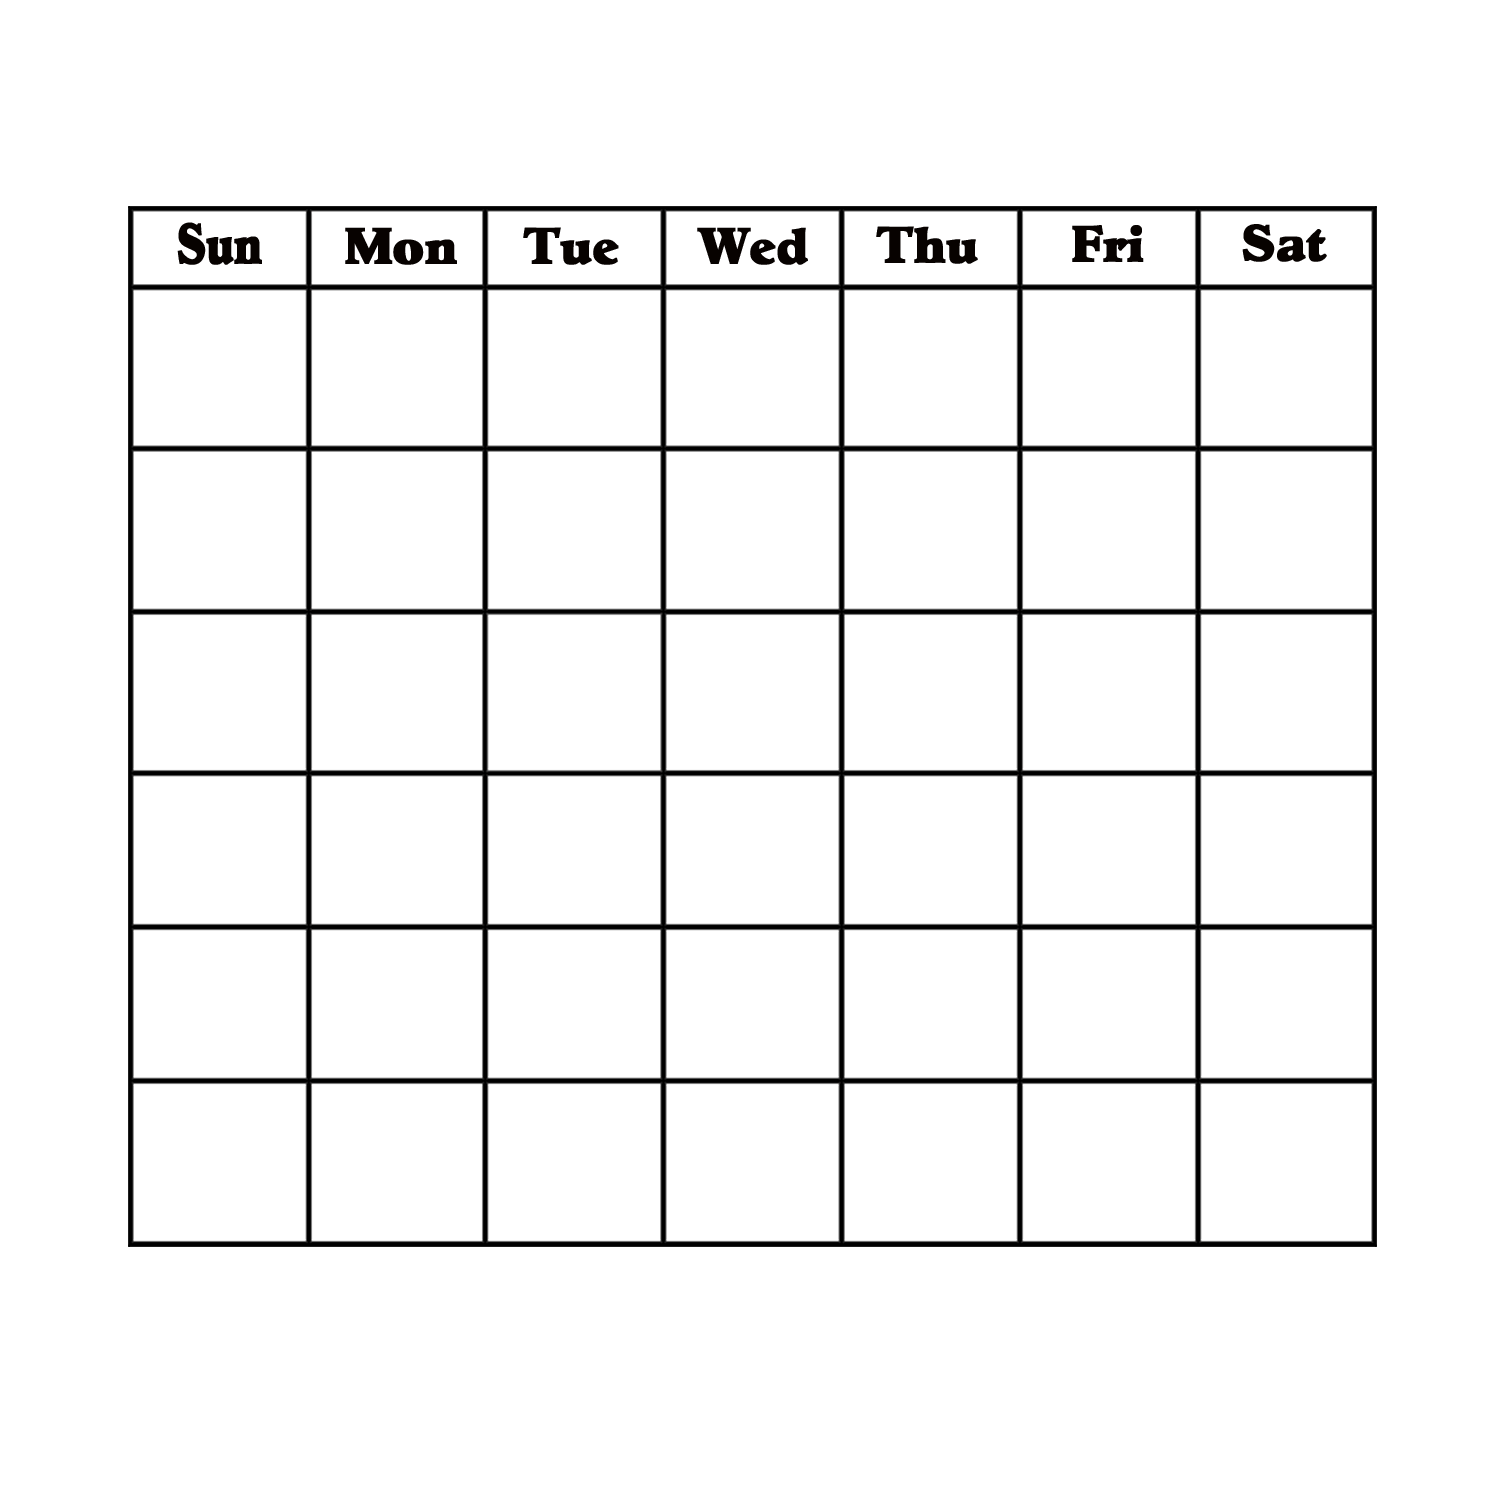 Blank Calendar Page With Day Headings